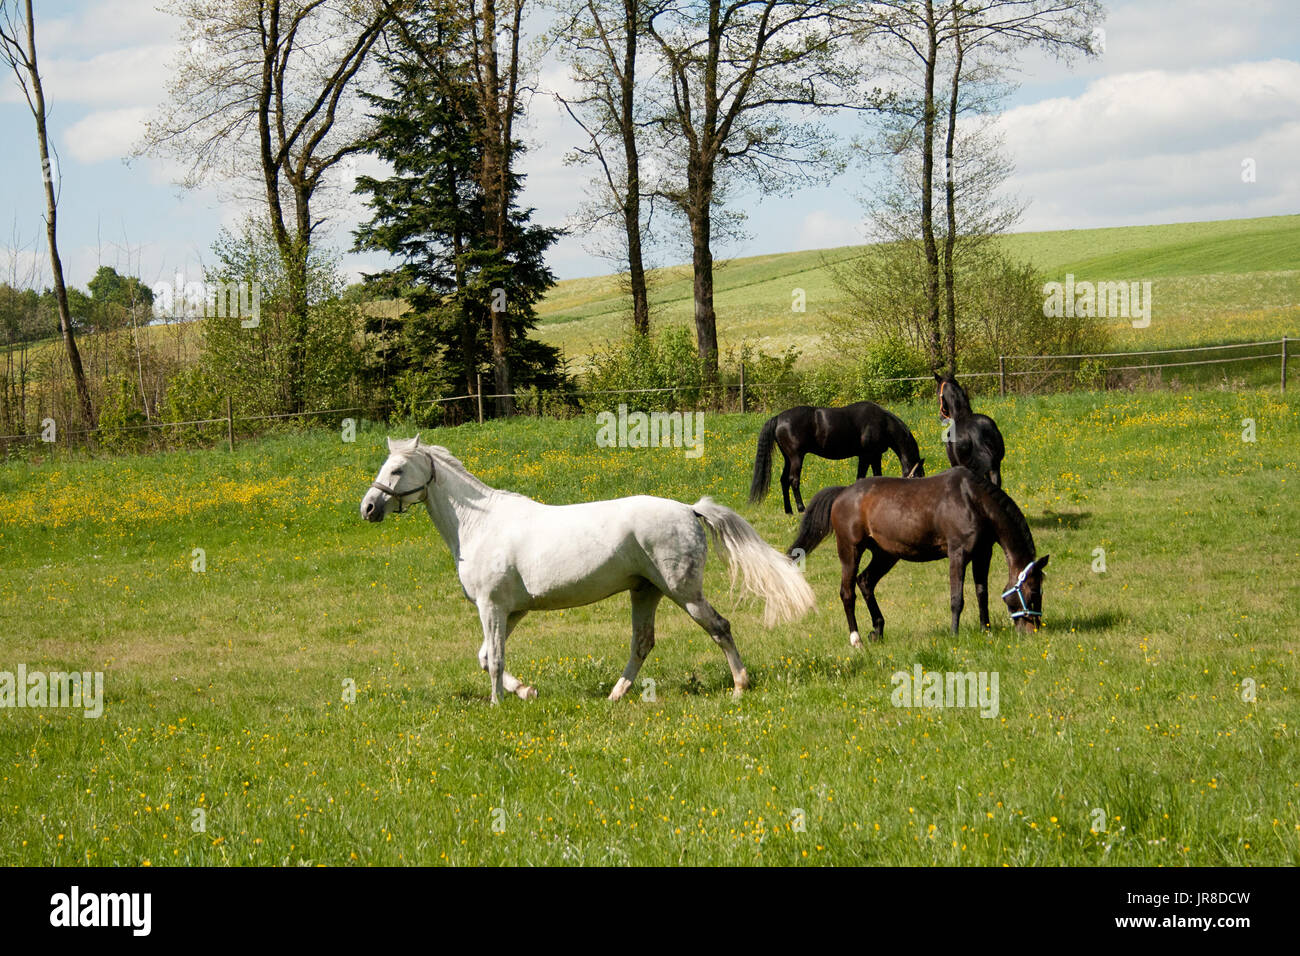 free horses grazing in meadow with lots of flowers in summer. herd of horses together outside - Stock Image